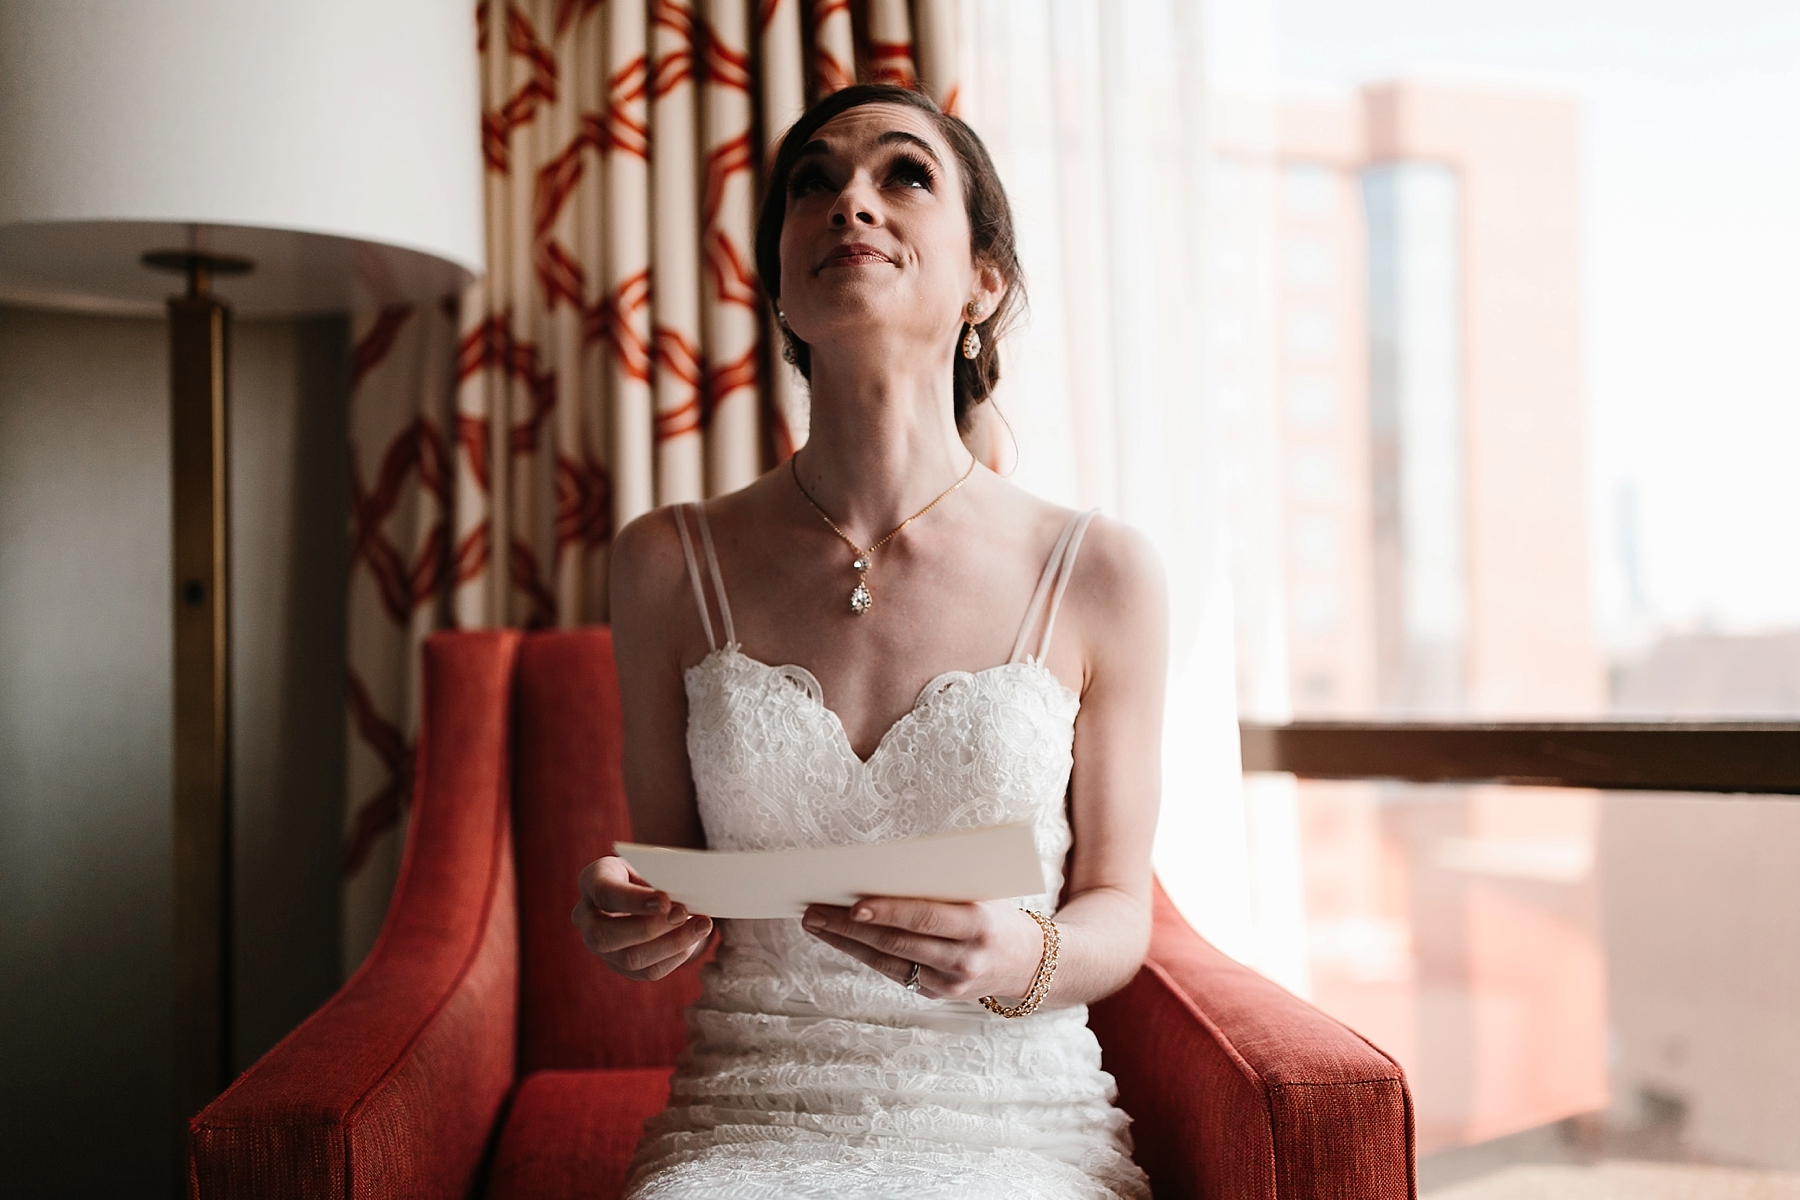 Emily + Caleb _ an elegant, intentional, industrial style wedding with navy + gold accents at 6500 in Dallas, TX by North Texas Wedding Photographer Rachel Meagan Photography _ 055